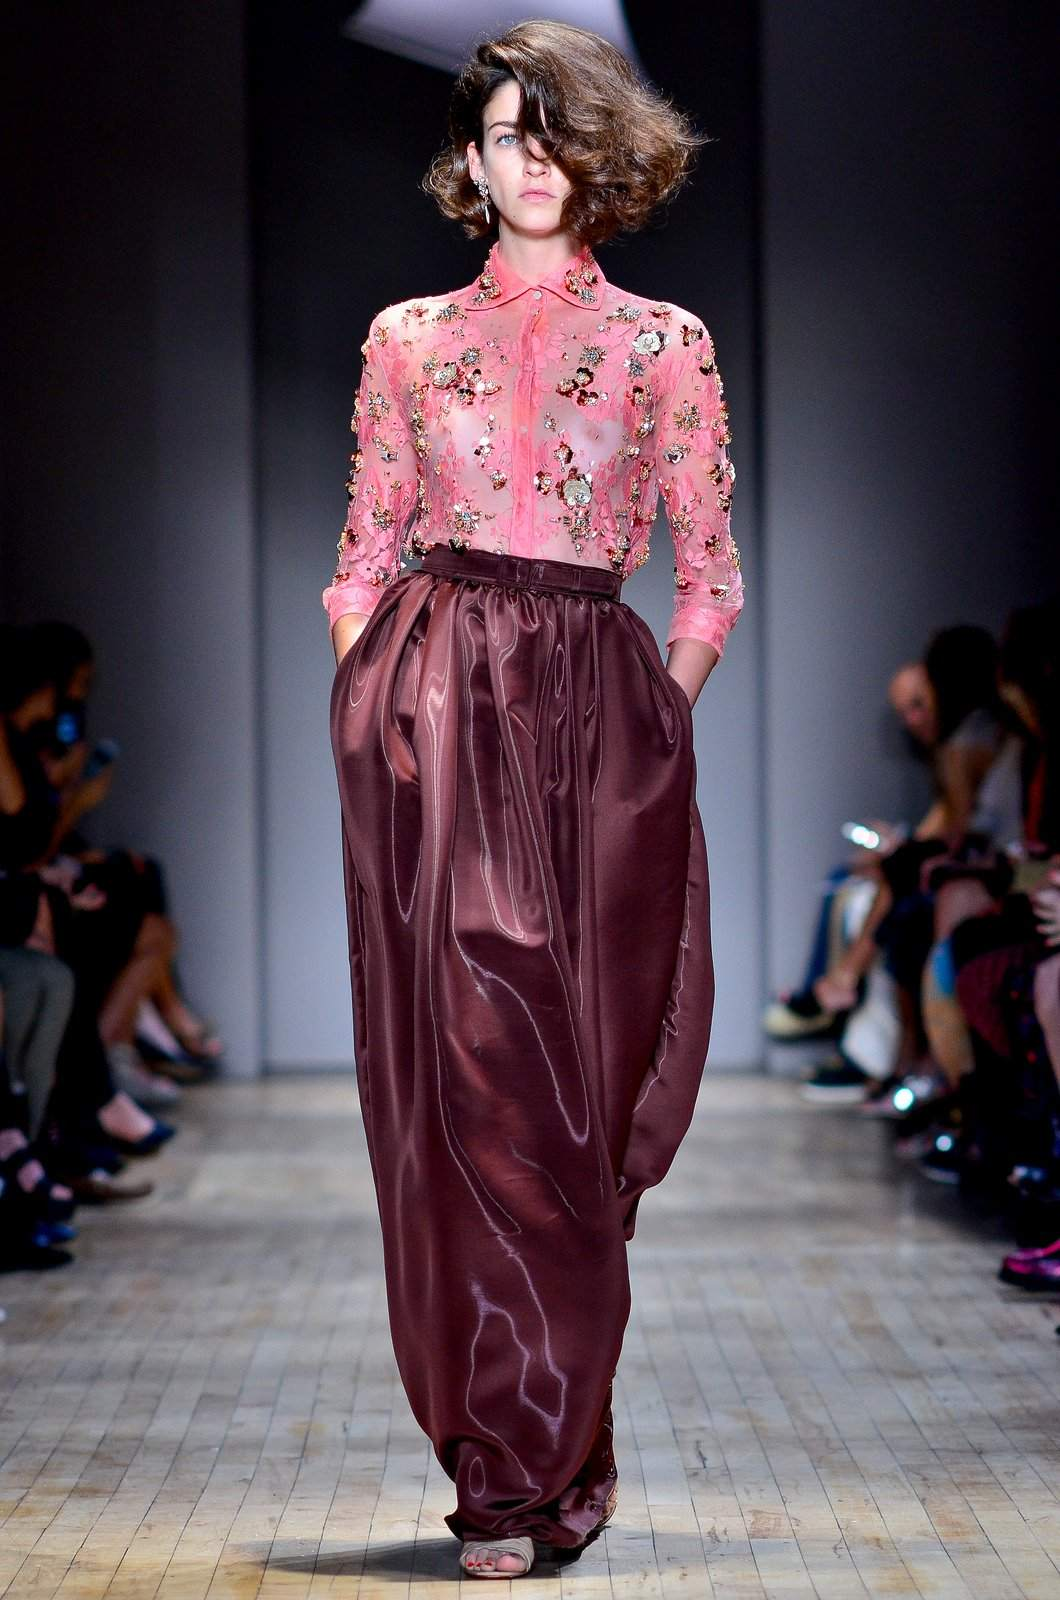 jenny packham12 Jenny Packham Spring/Summer Collection 2015 at NYC Fashion Week